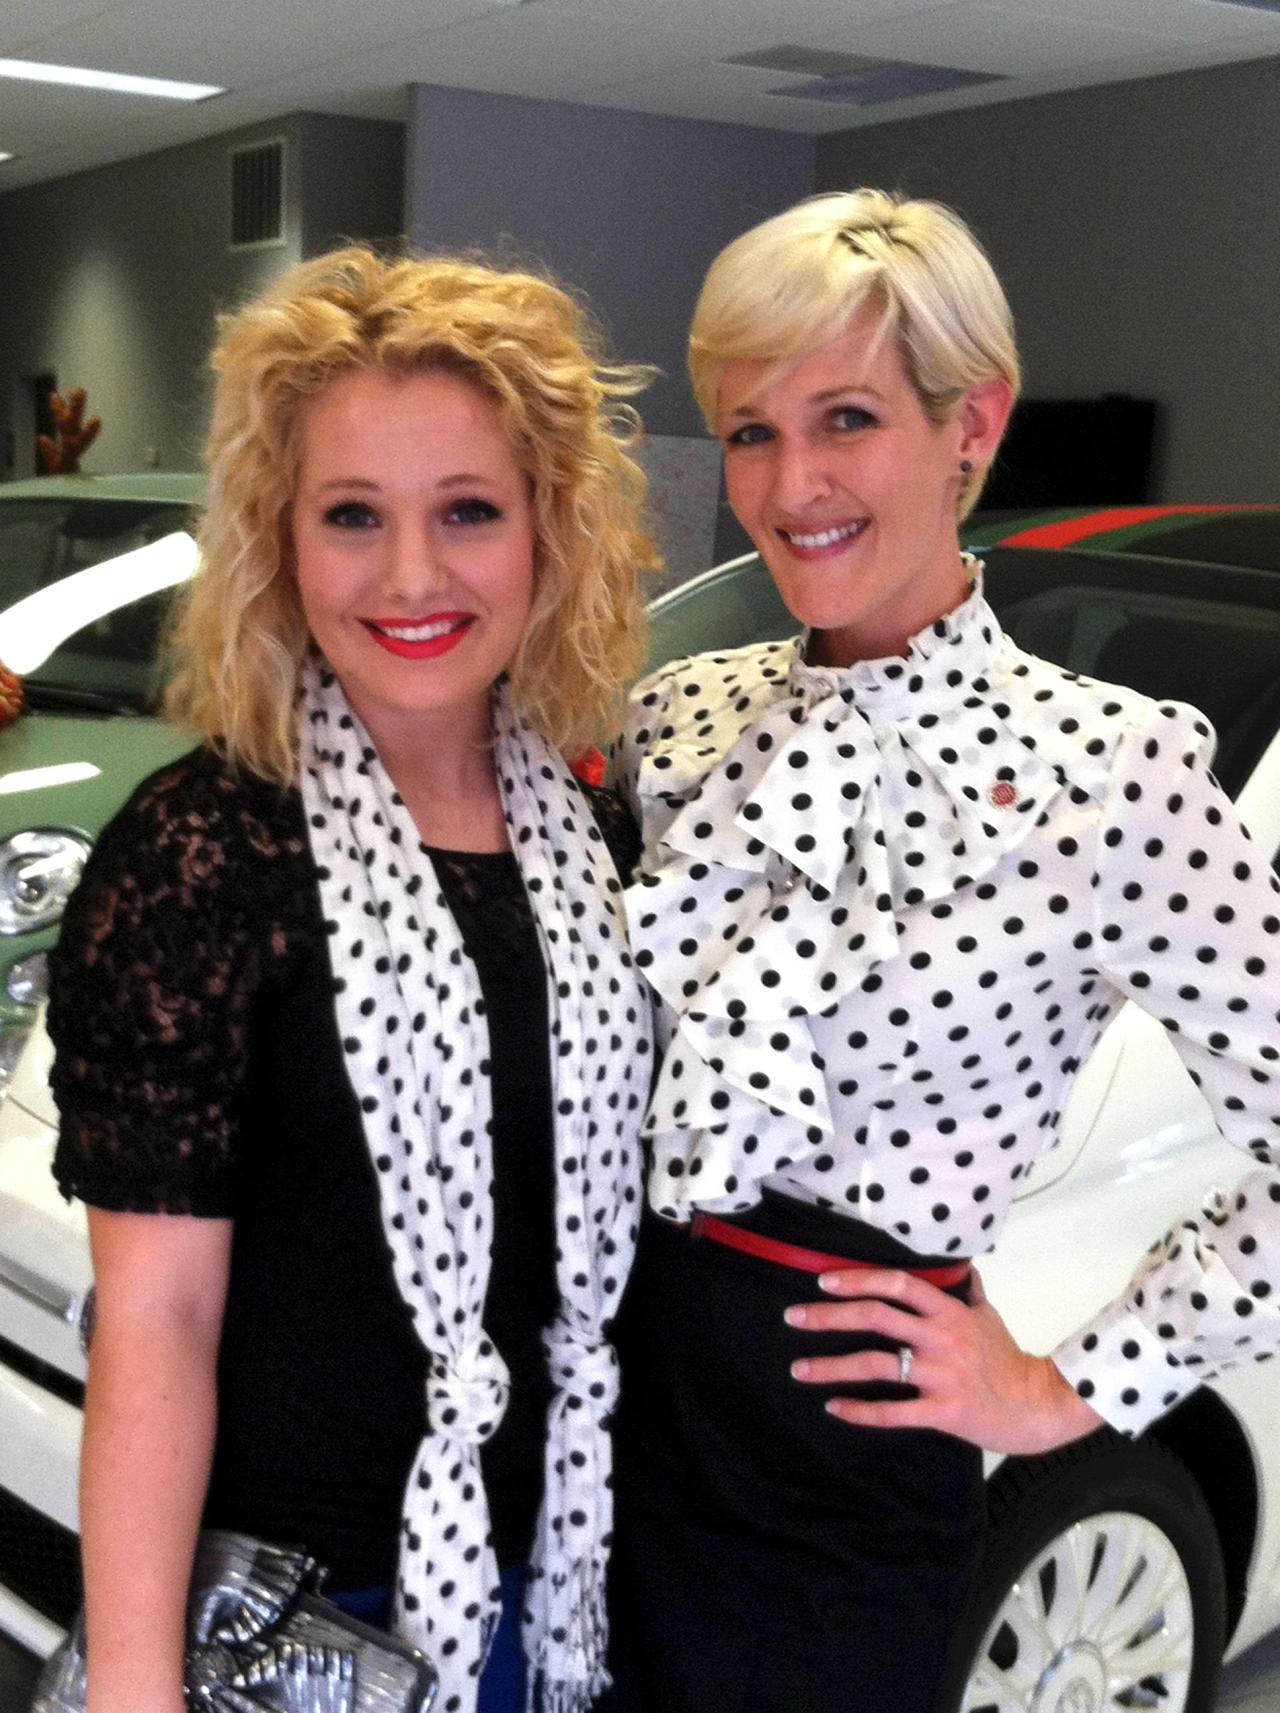 The VIP and Fiat of Birmingham Director Kimberly Spitzer matched with out polka dots! Great minds think alike *wink*